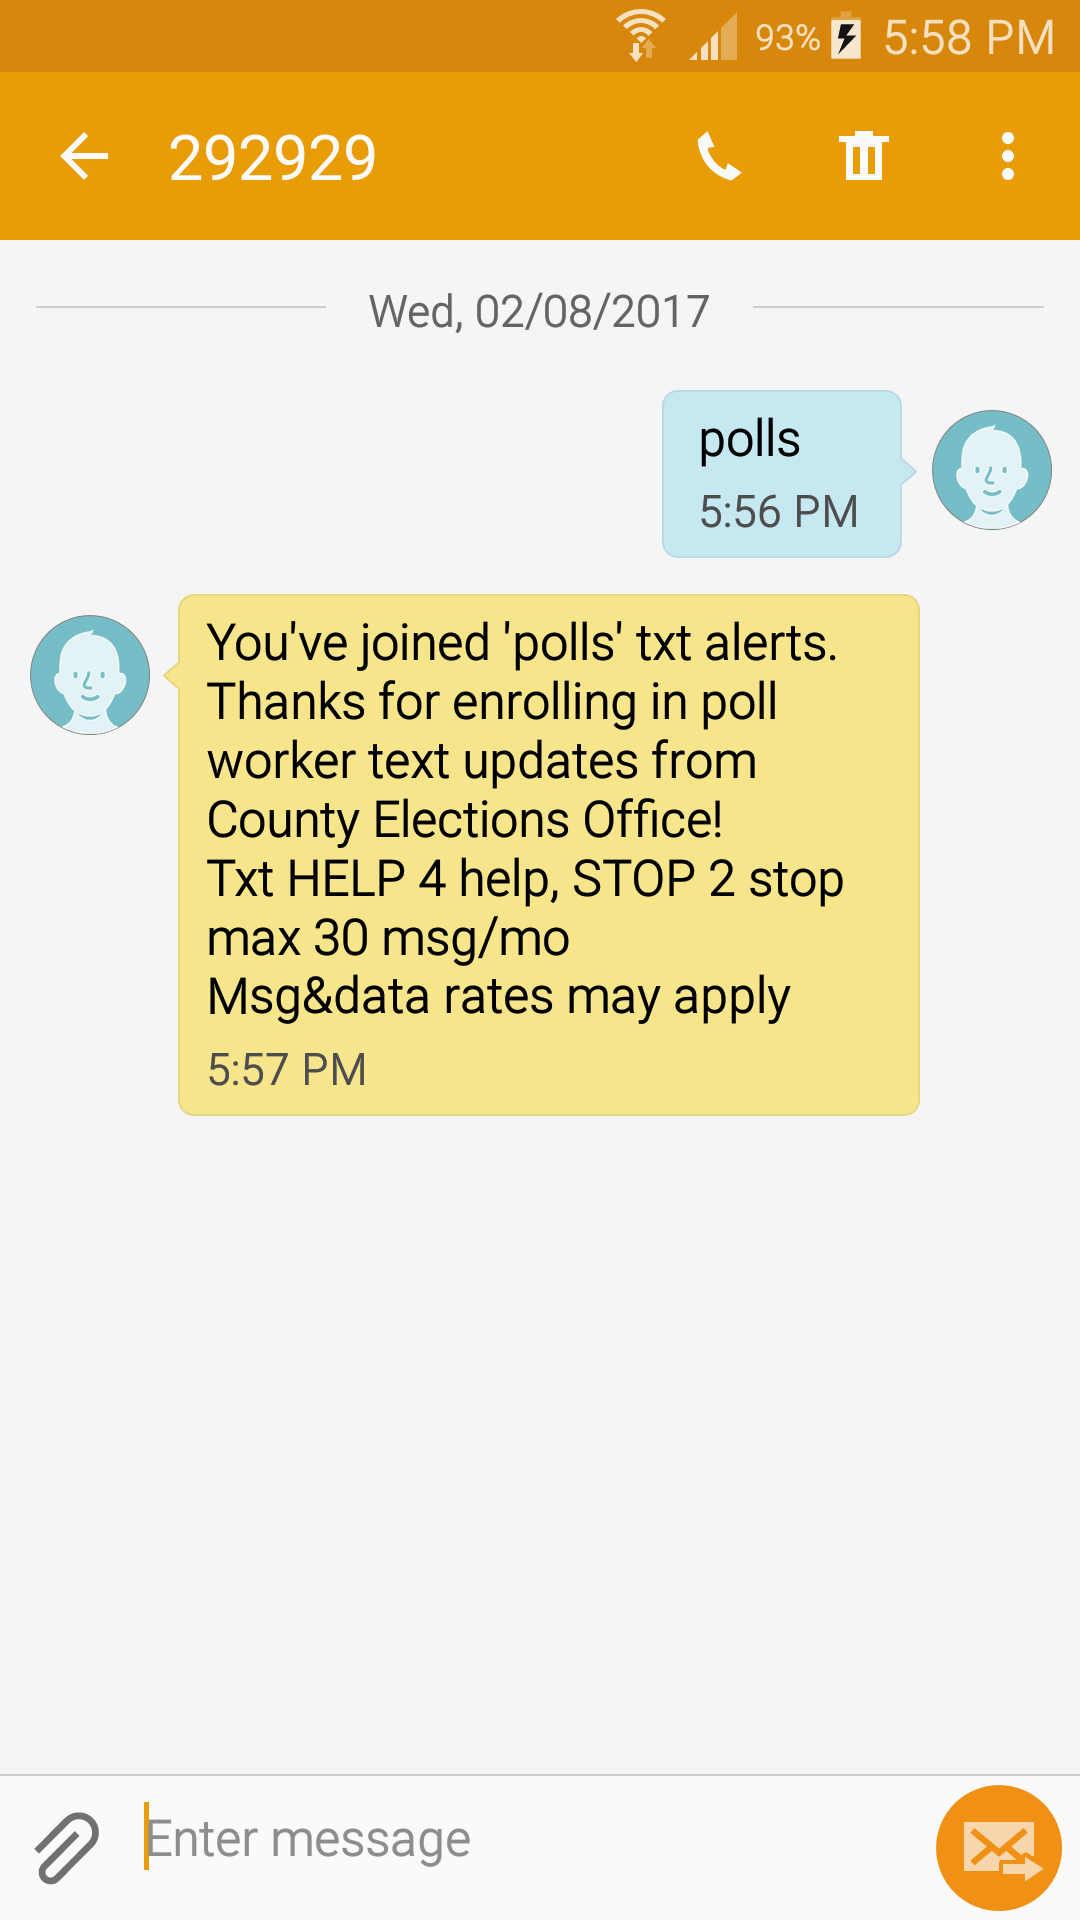 On a phone, a user has texted the keyword polls and has received a confirmation message in response